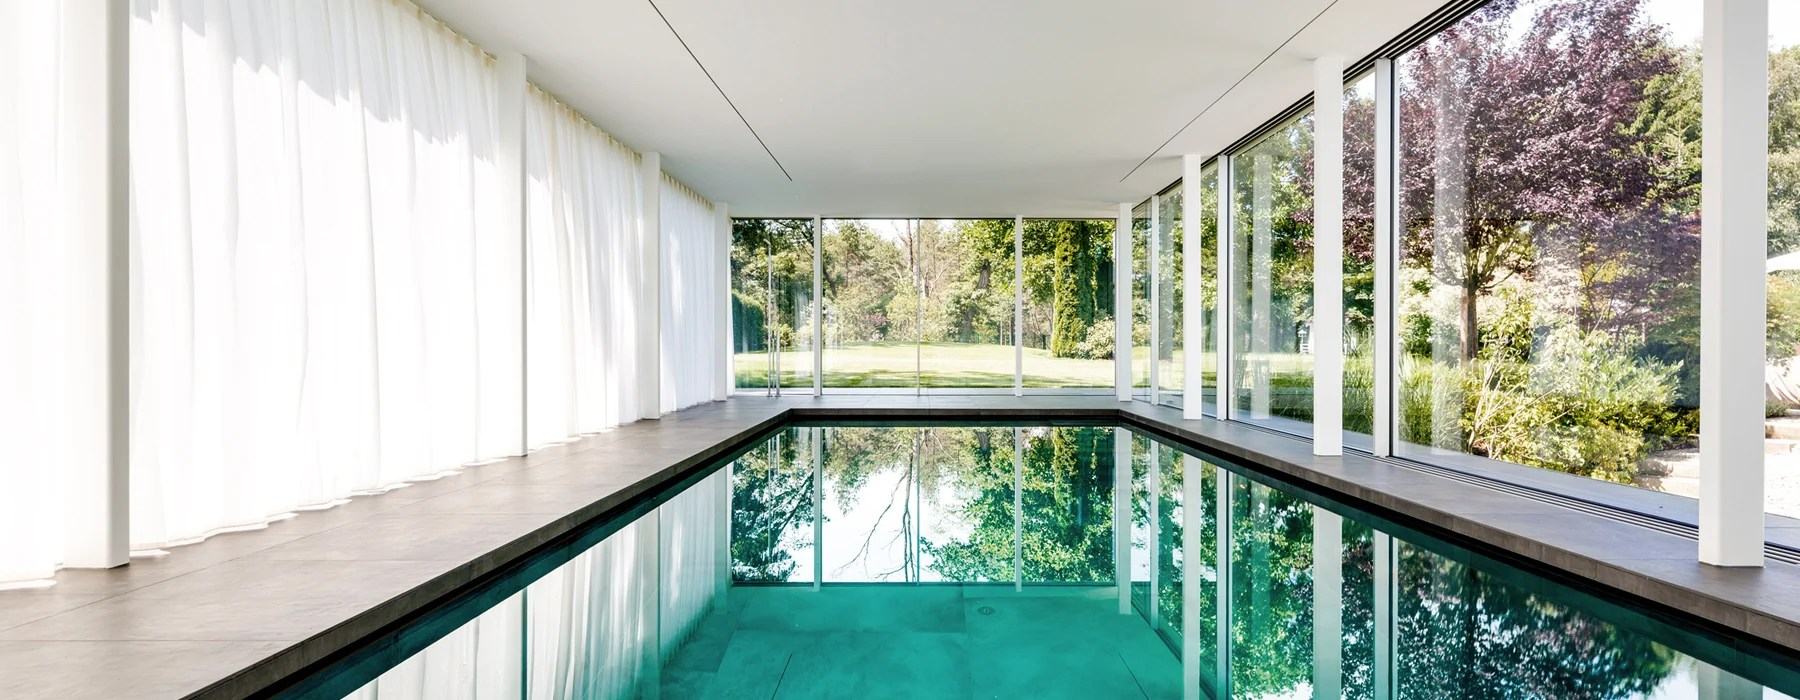 Poolhaus Meer Architekten Private Poolhouse In Munich